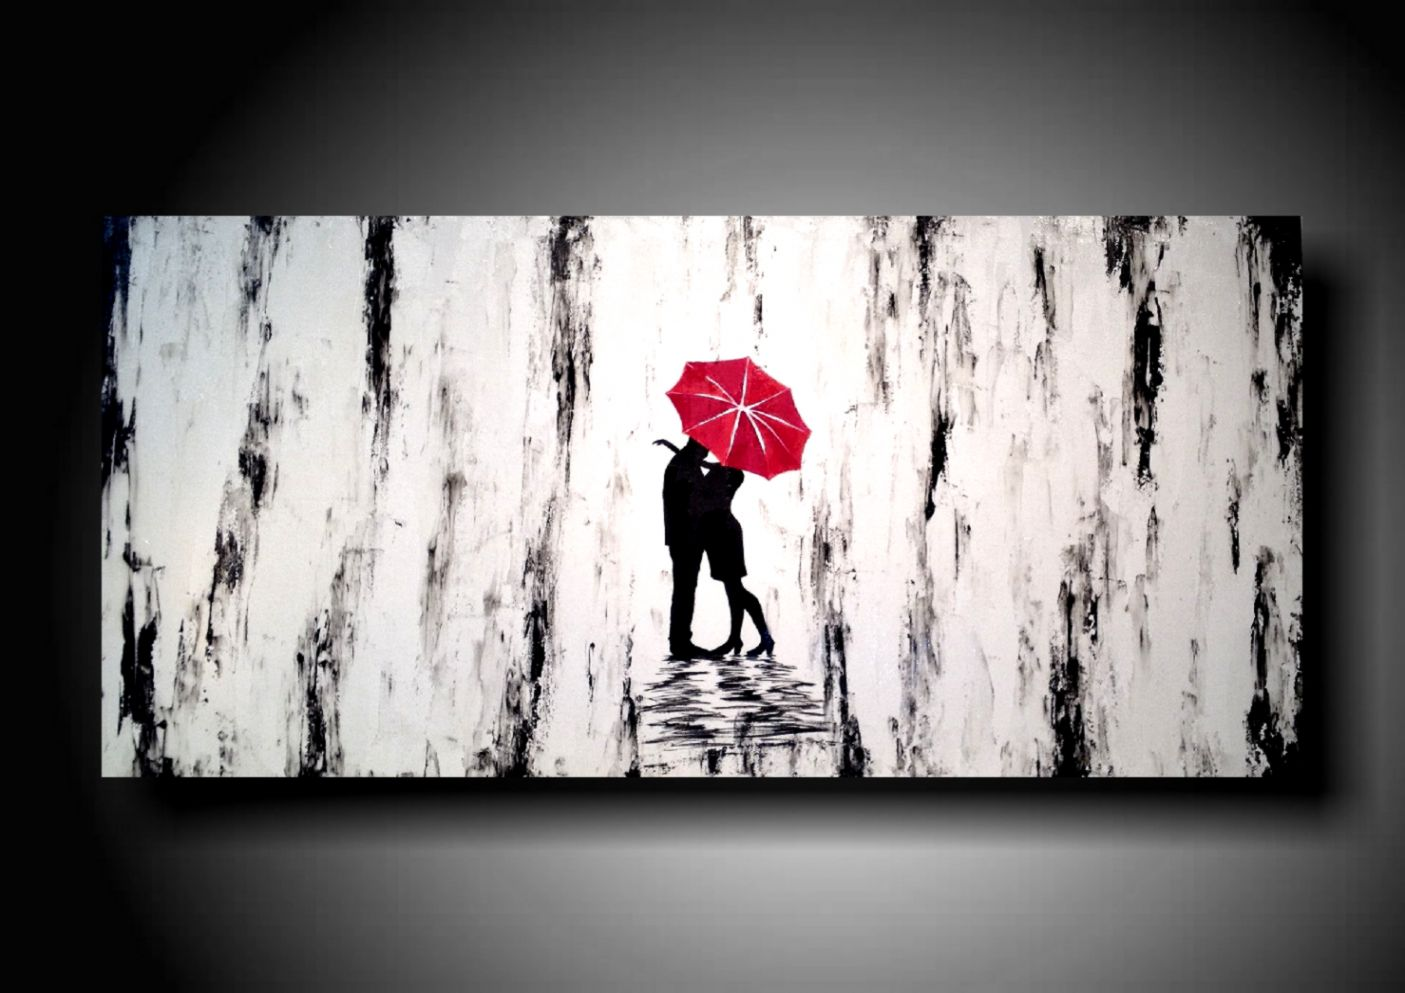 Abstract Painting Black And White Hd Wallpapers Hd Wallpapers Gallery